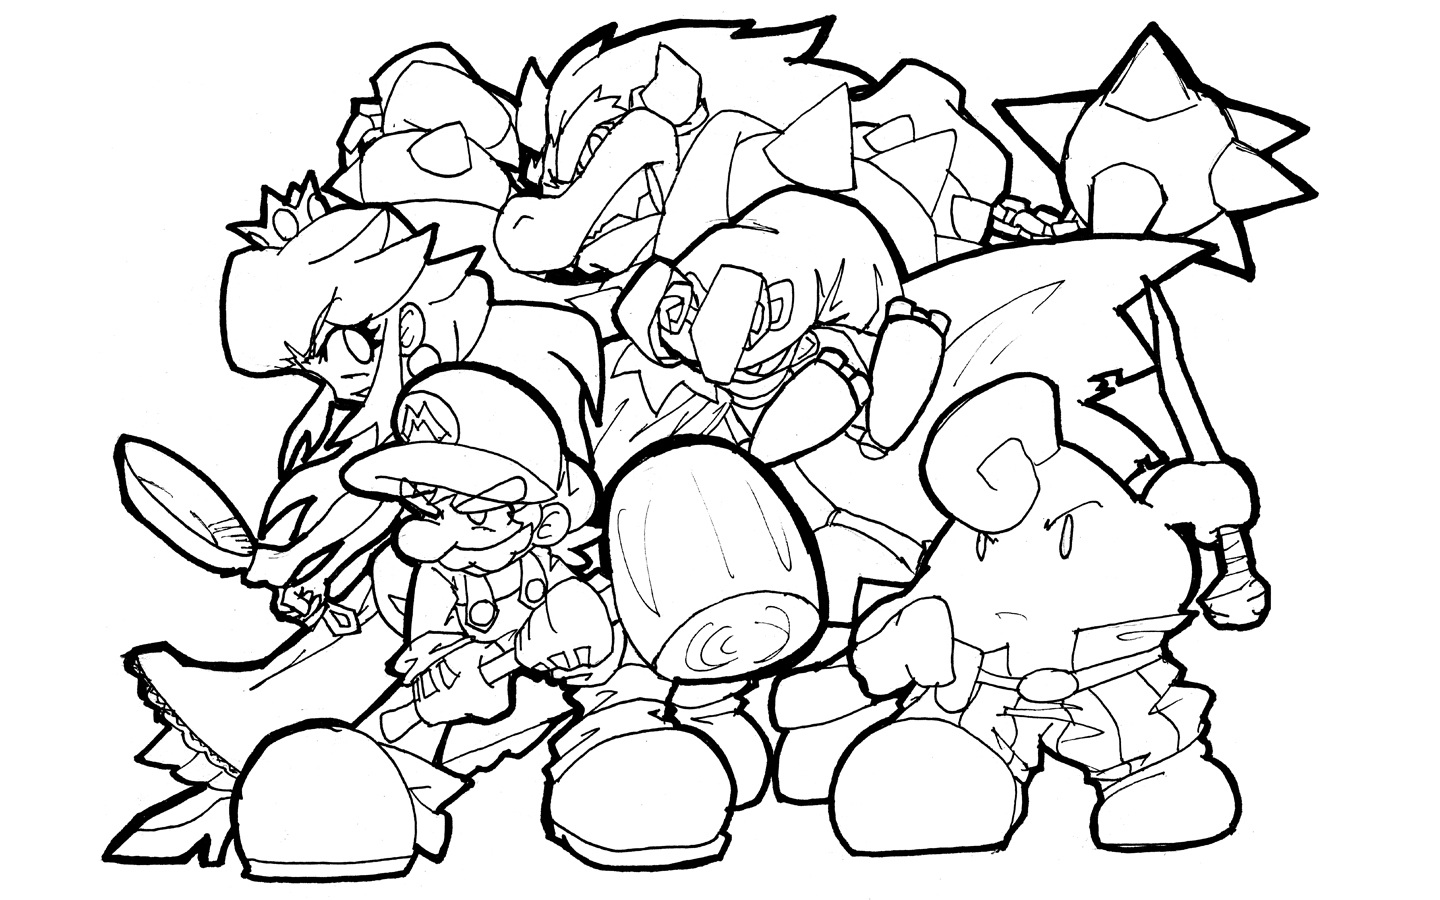 super mario bros printable coloring pages 26 best images about coloriages super mario on pinterest pages coloring mario super bros printable